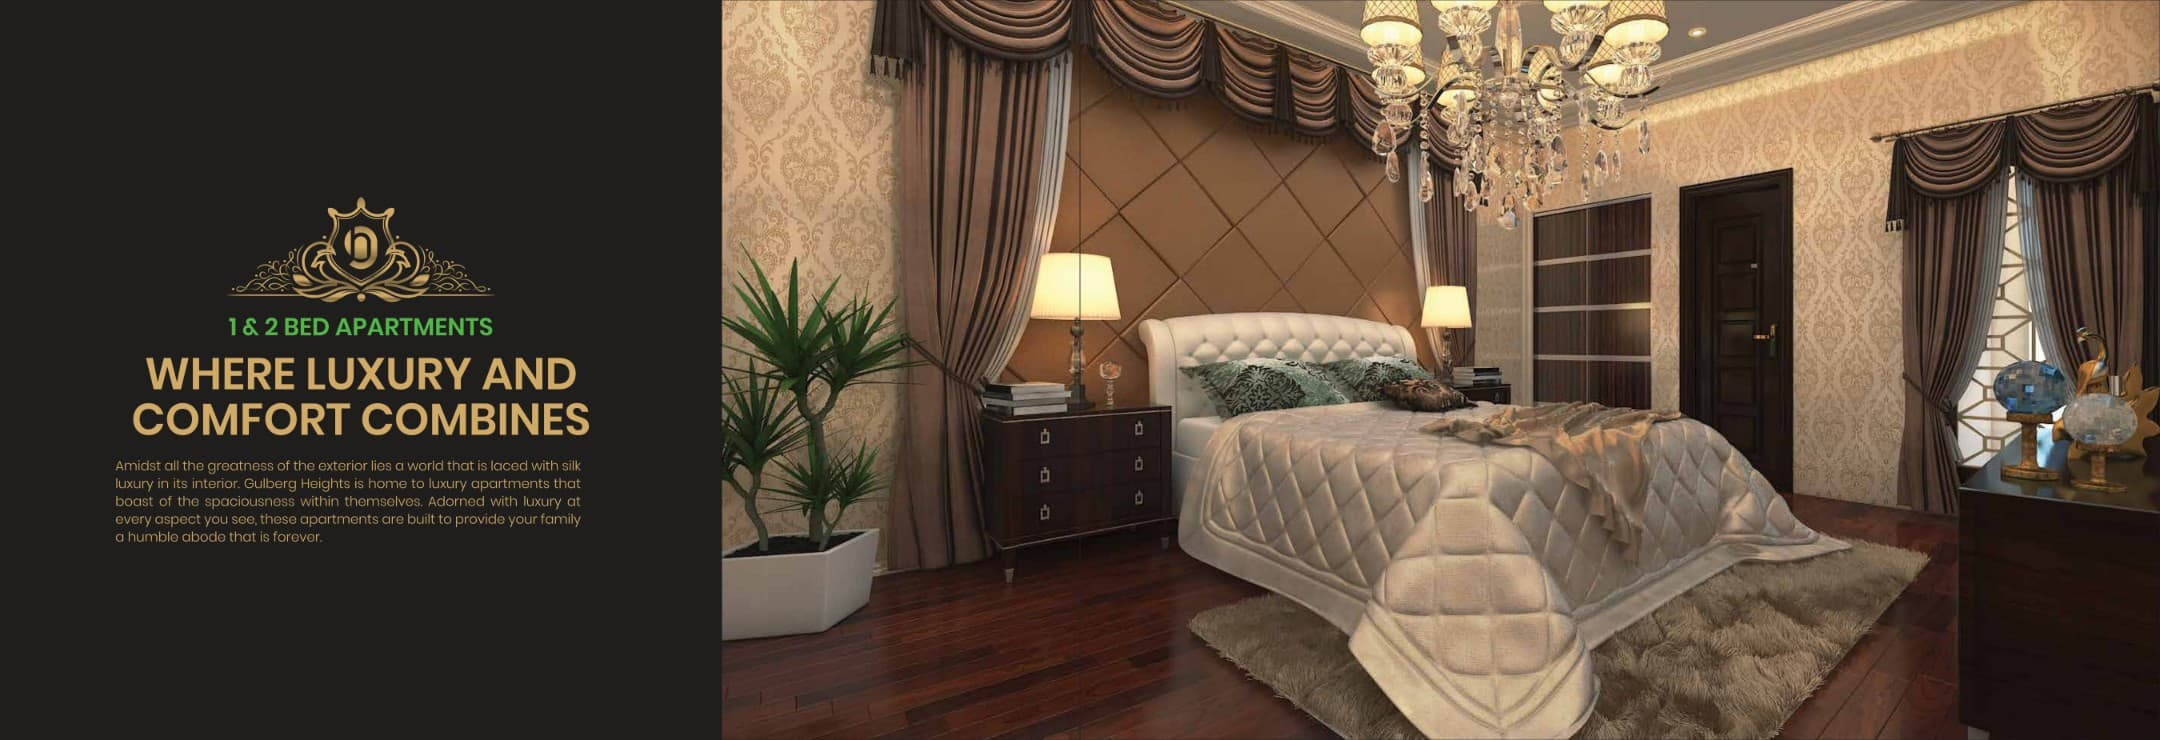 Gulberg Heights 1 Bed Apartment on 3 Years Installments